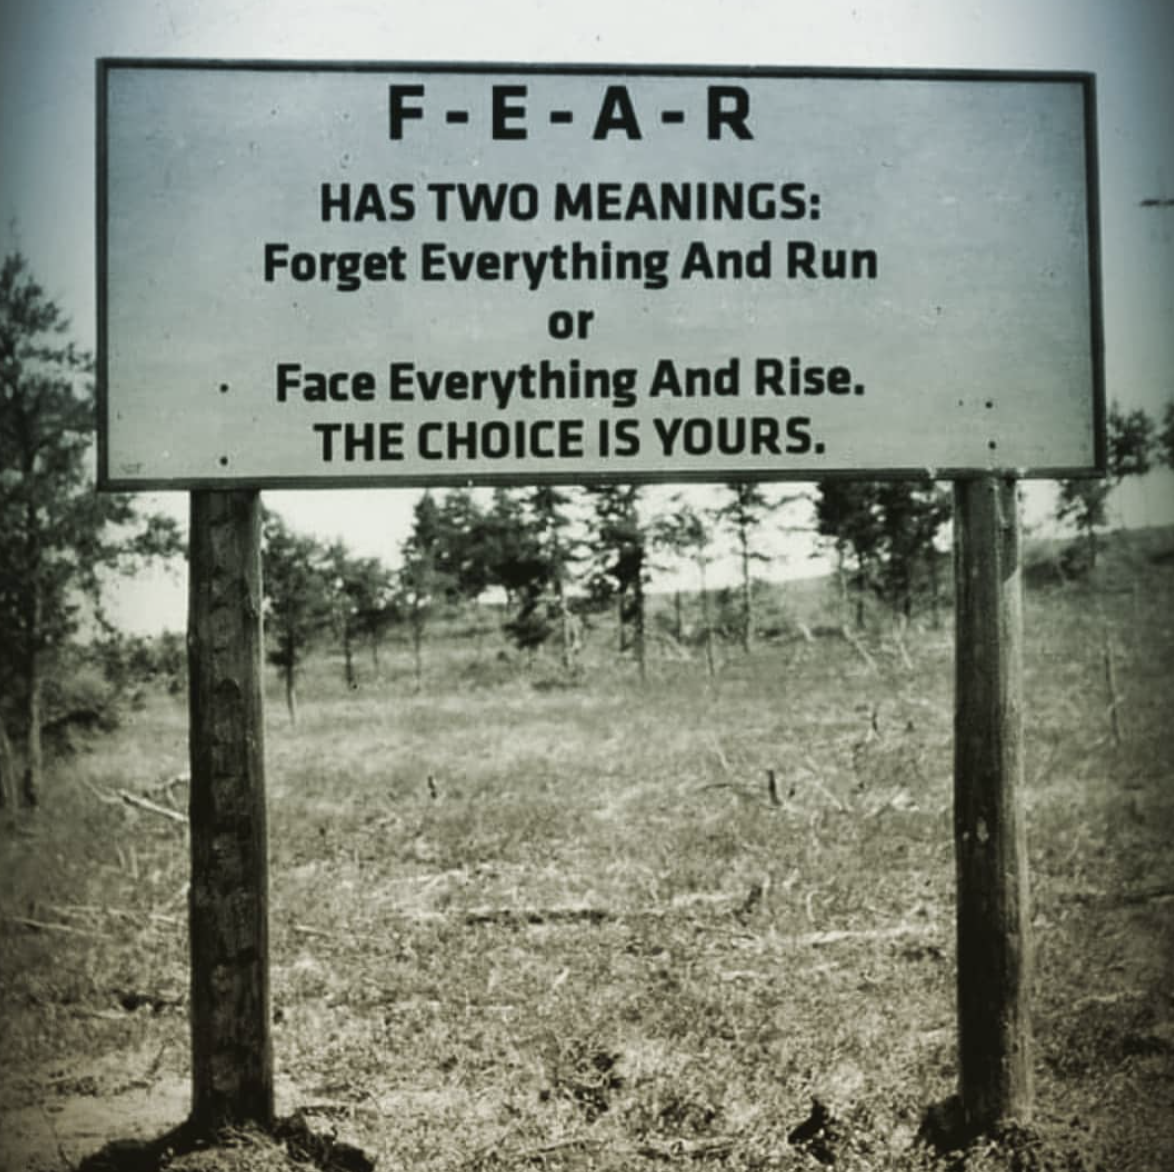 F-E-A-R HAS TWO MEANINGS: Forget Everything And Run or - Face Everything And Rlse. THE CHOICE IS YOURS. https://inspirational.ly